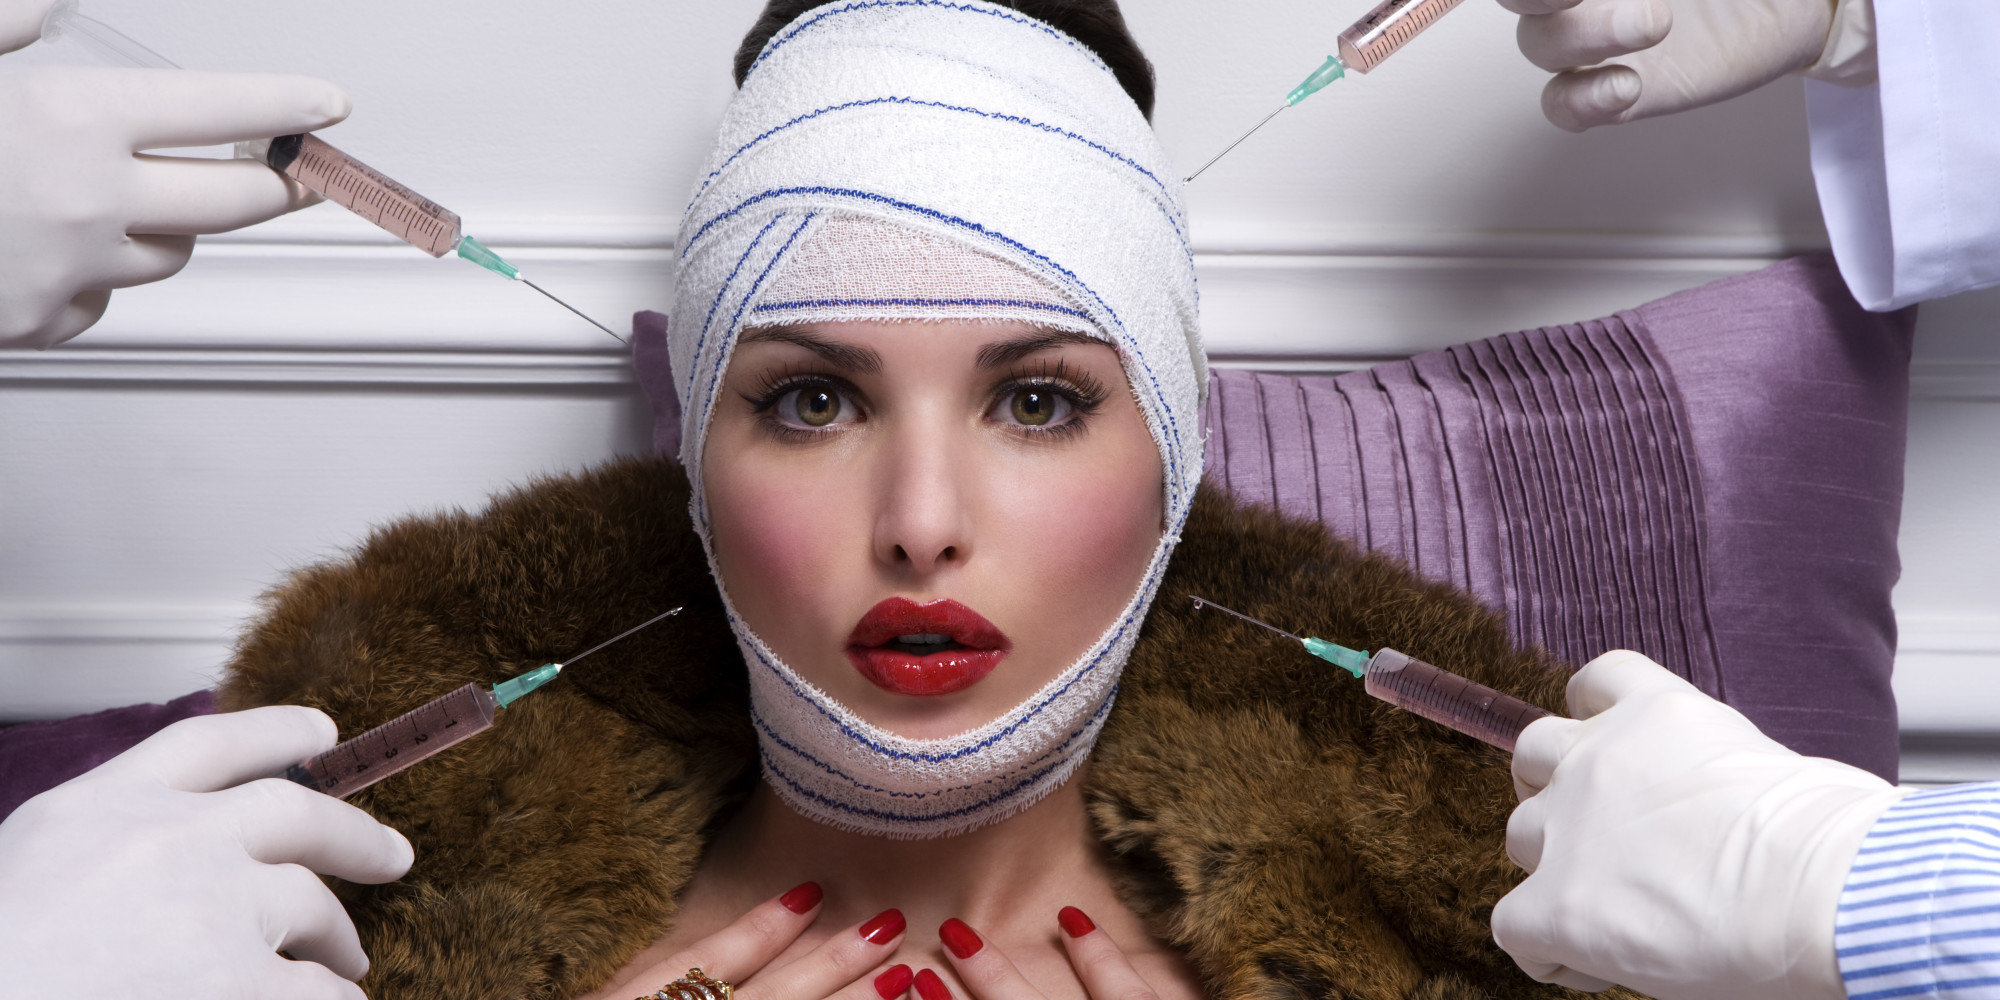 The Cosmetic Surgery Trends Of Australia